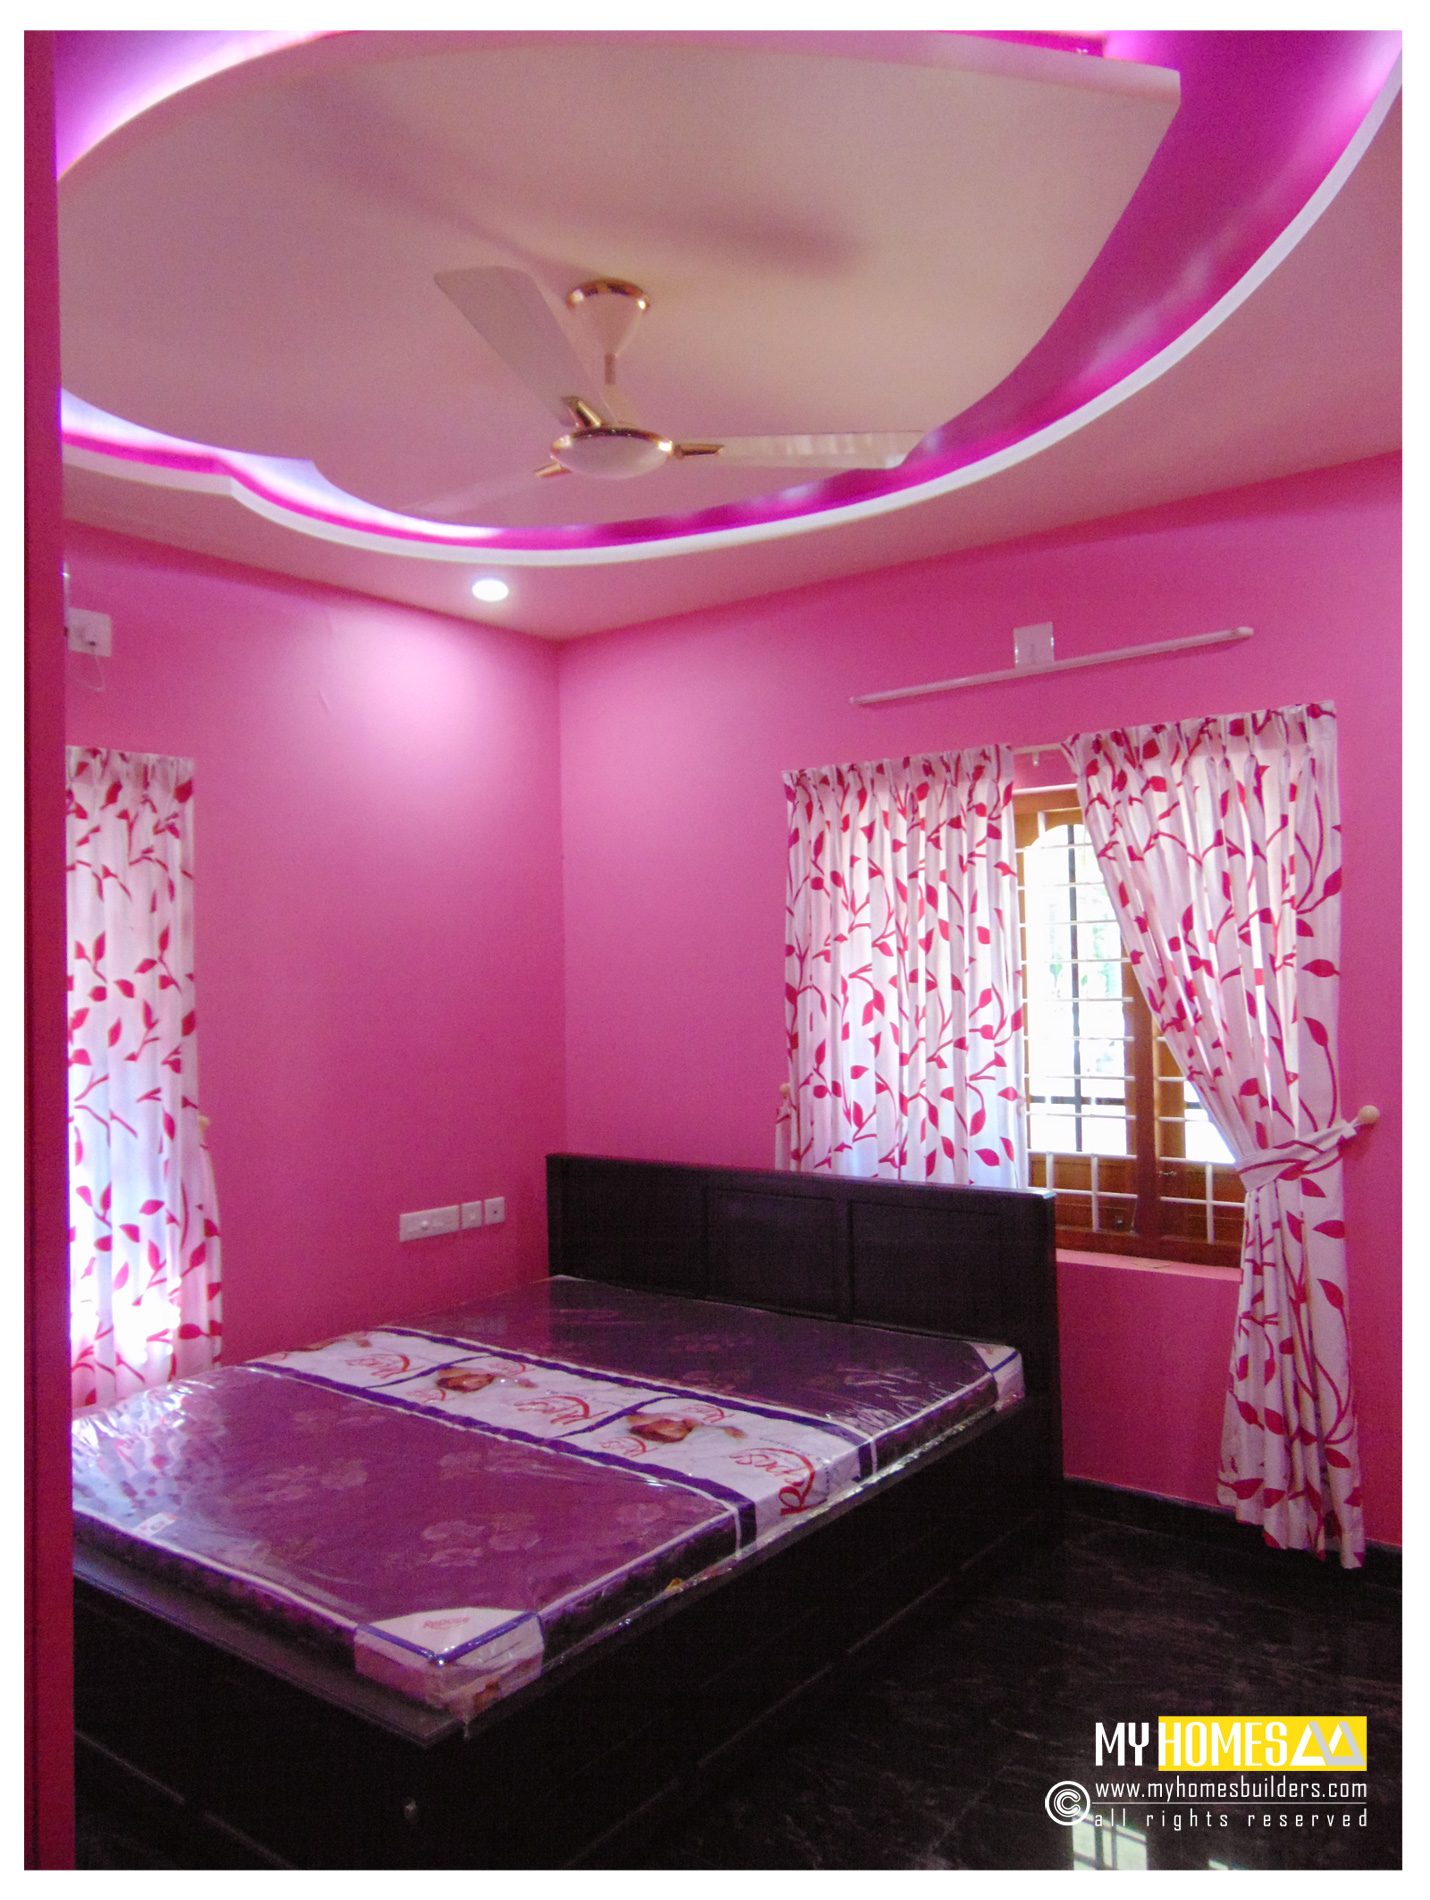 Simple style kerala bedroom designs ideas for home interior for Bedroom designer